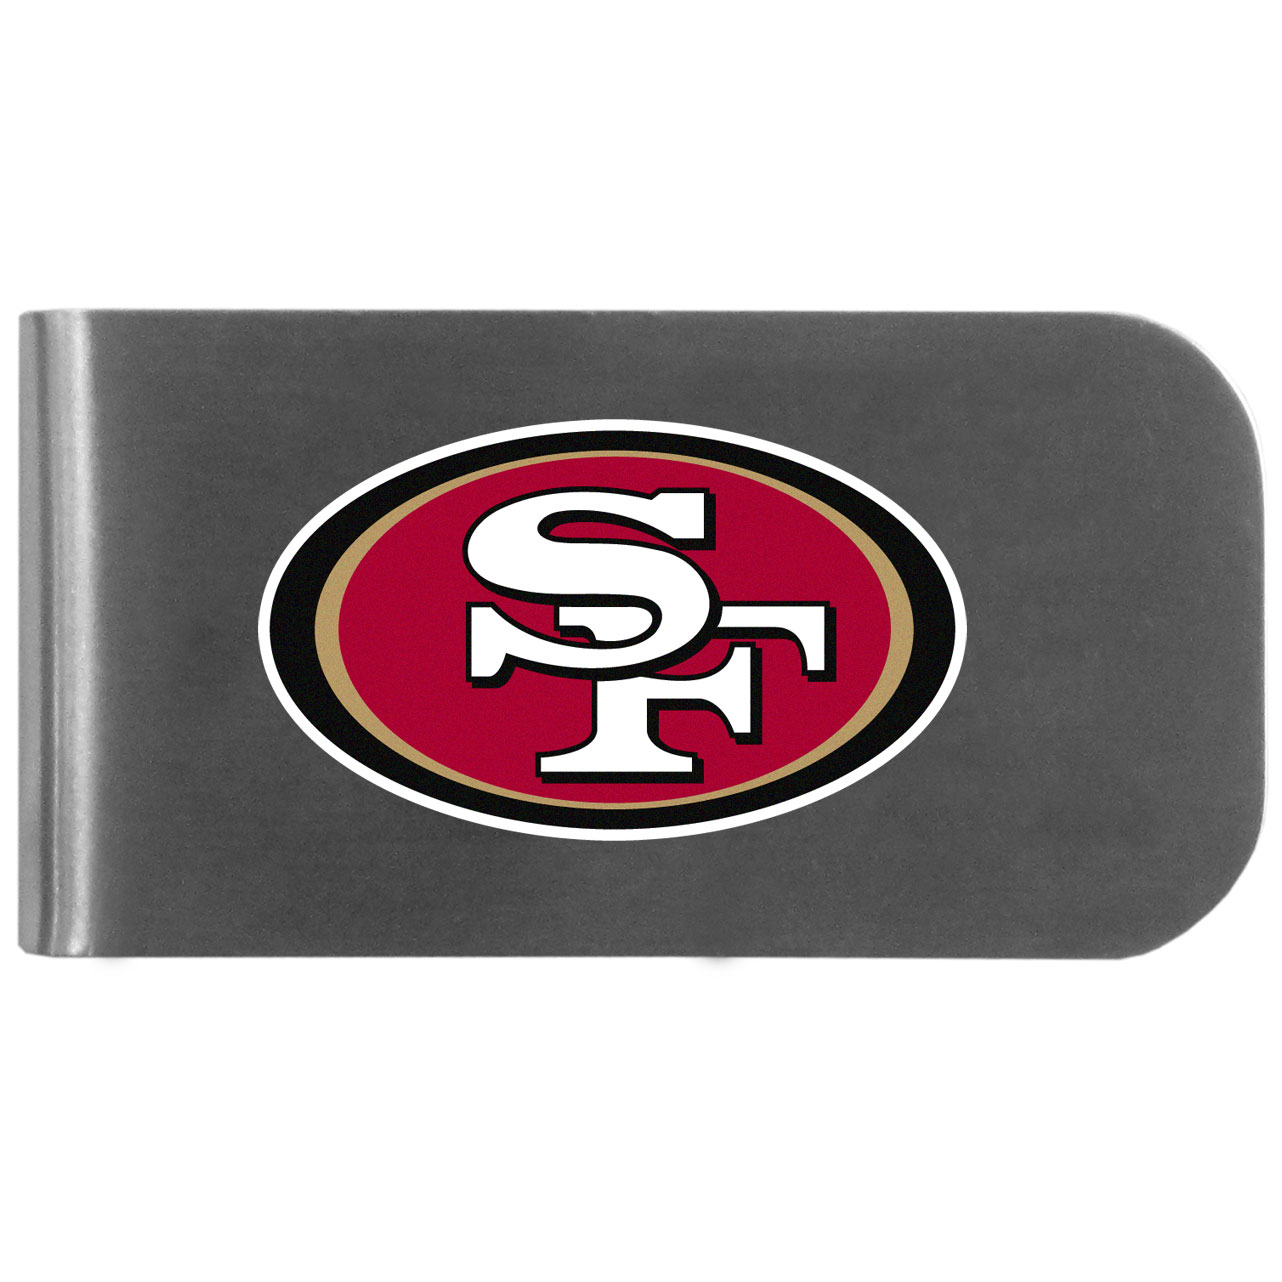 San Francisco 49ers Logo Bottle Opener Money Clip - This unique money clip features a classic, brushed-metal finish with a handy bottle opener feature on the back. The clip has the San Francisco 49ers logo expertly printed on the front of the clip.